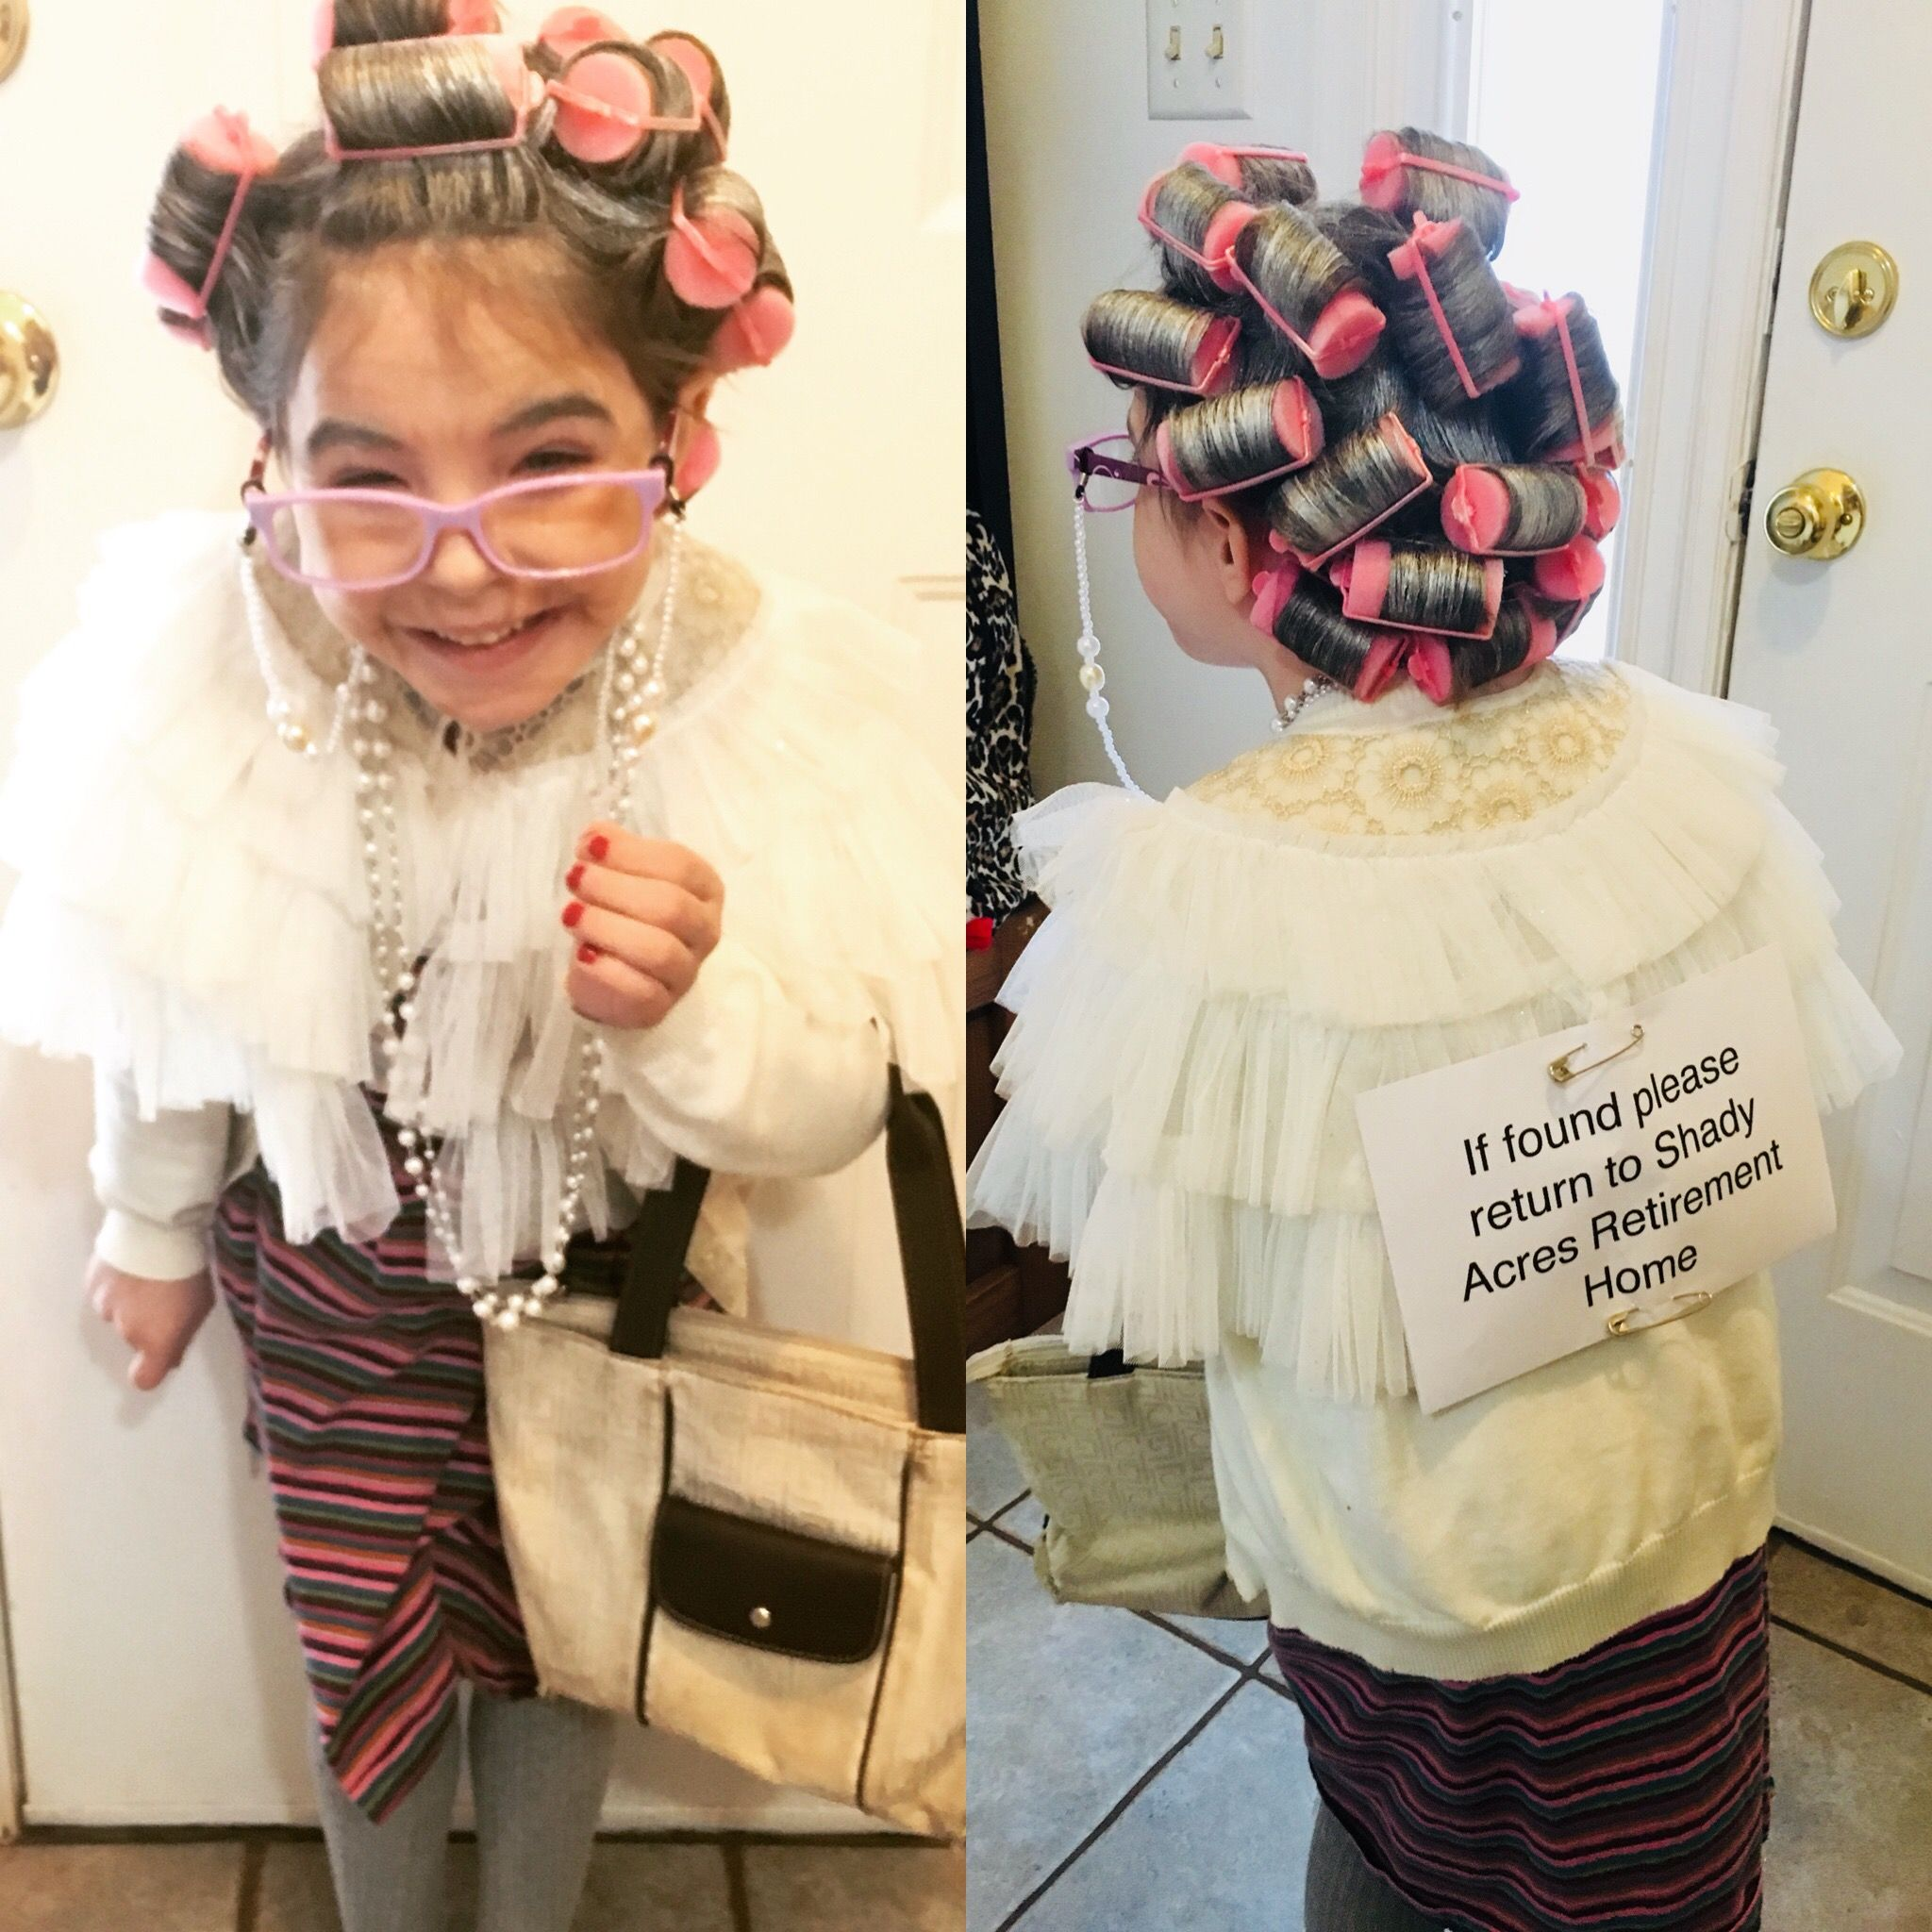 Dressed up like a 100 year old lady for the 100th day of